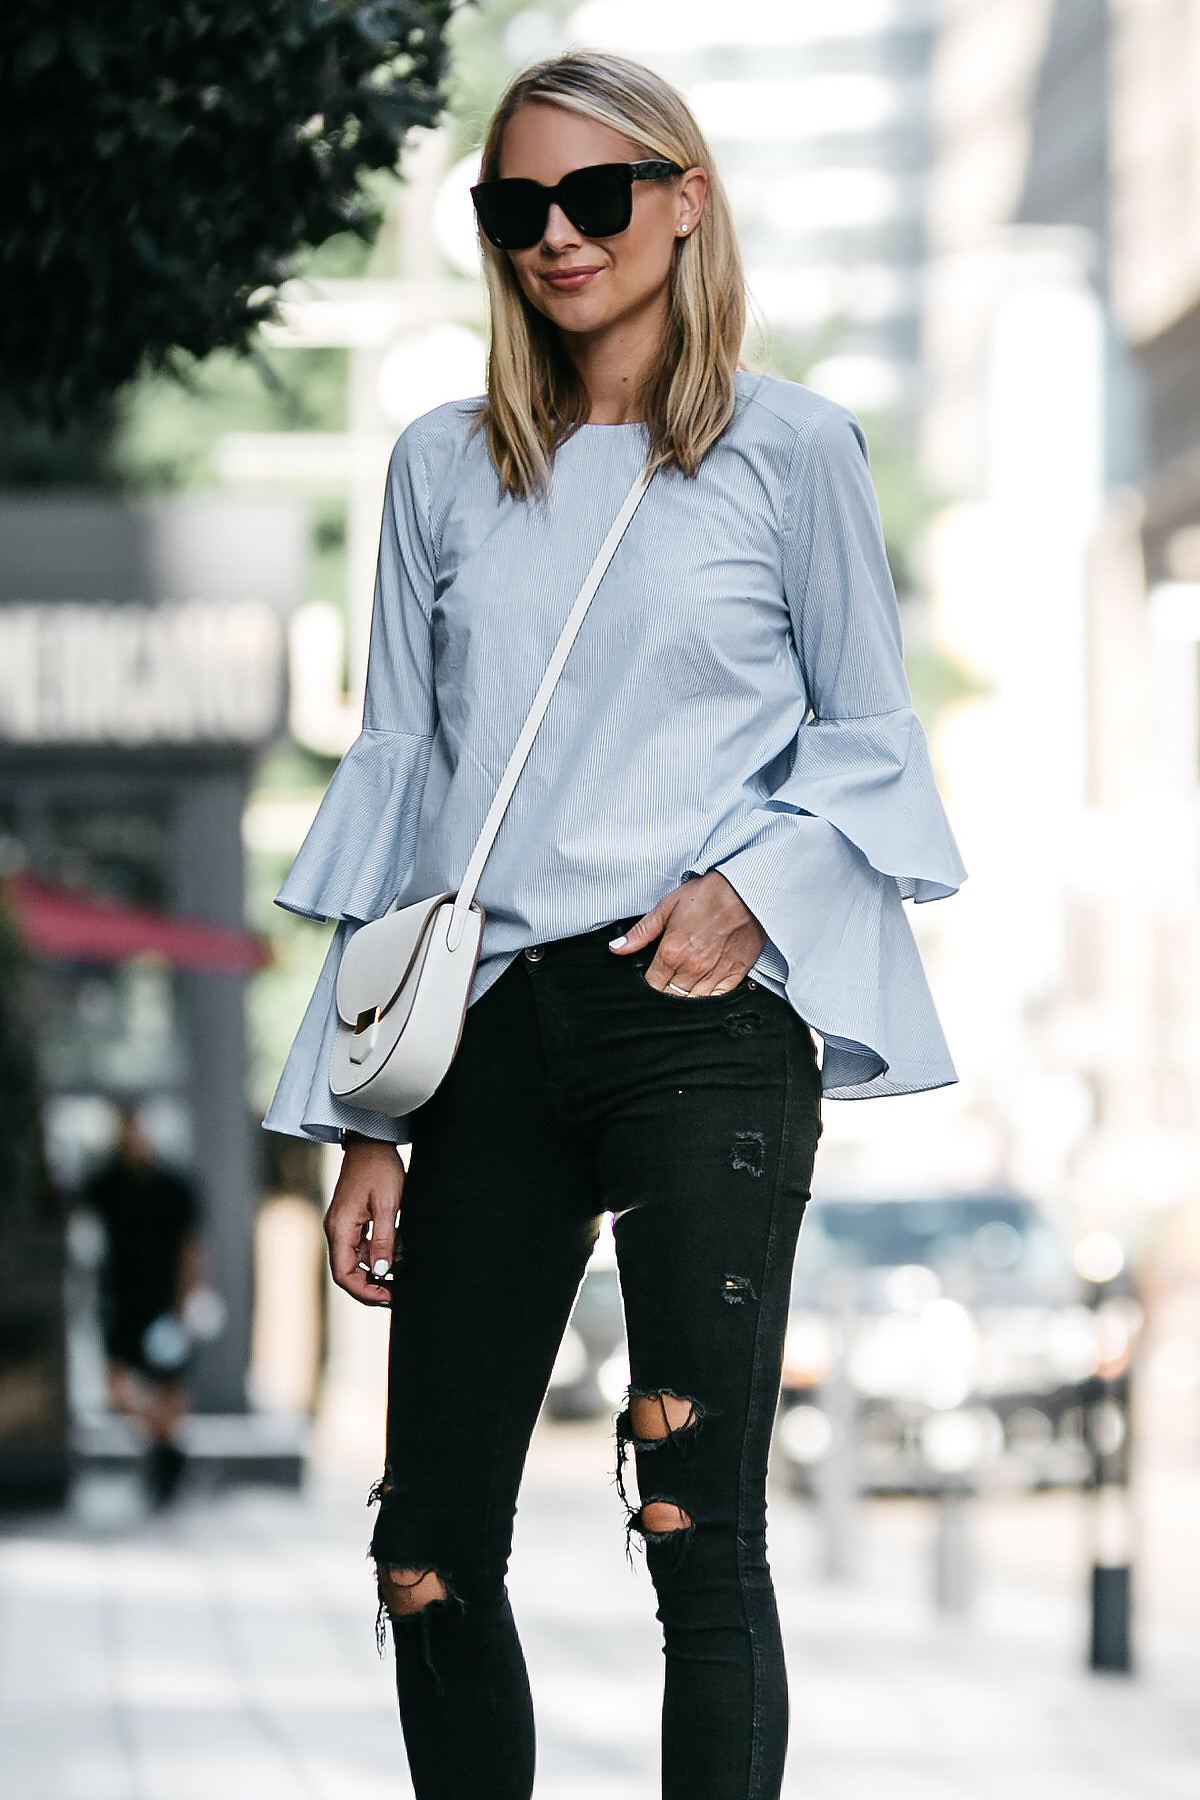 Blonde Woman Wearing Nordstrom Blue Bell Sleeve Top Black Ripped Skinny Jeans Outfit Celine Trotteur White Crossbody Fashion Jackson Dallas Blogger Fashion Blogger Street Style